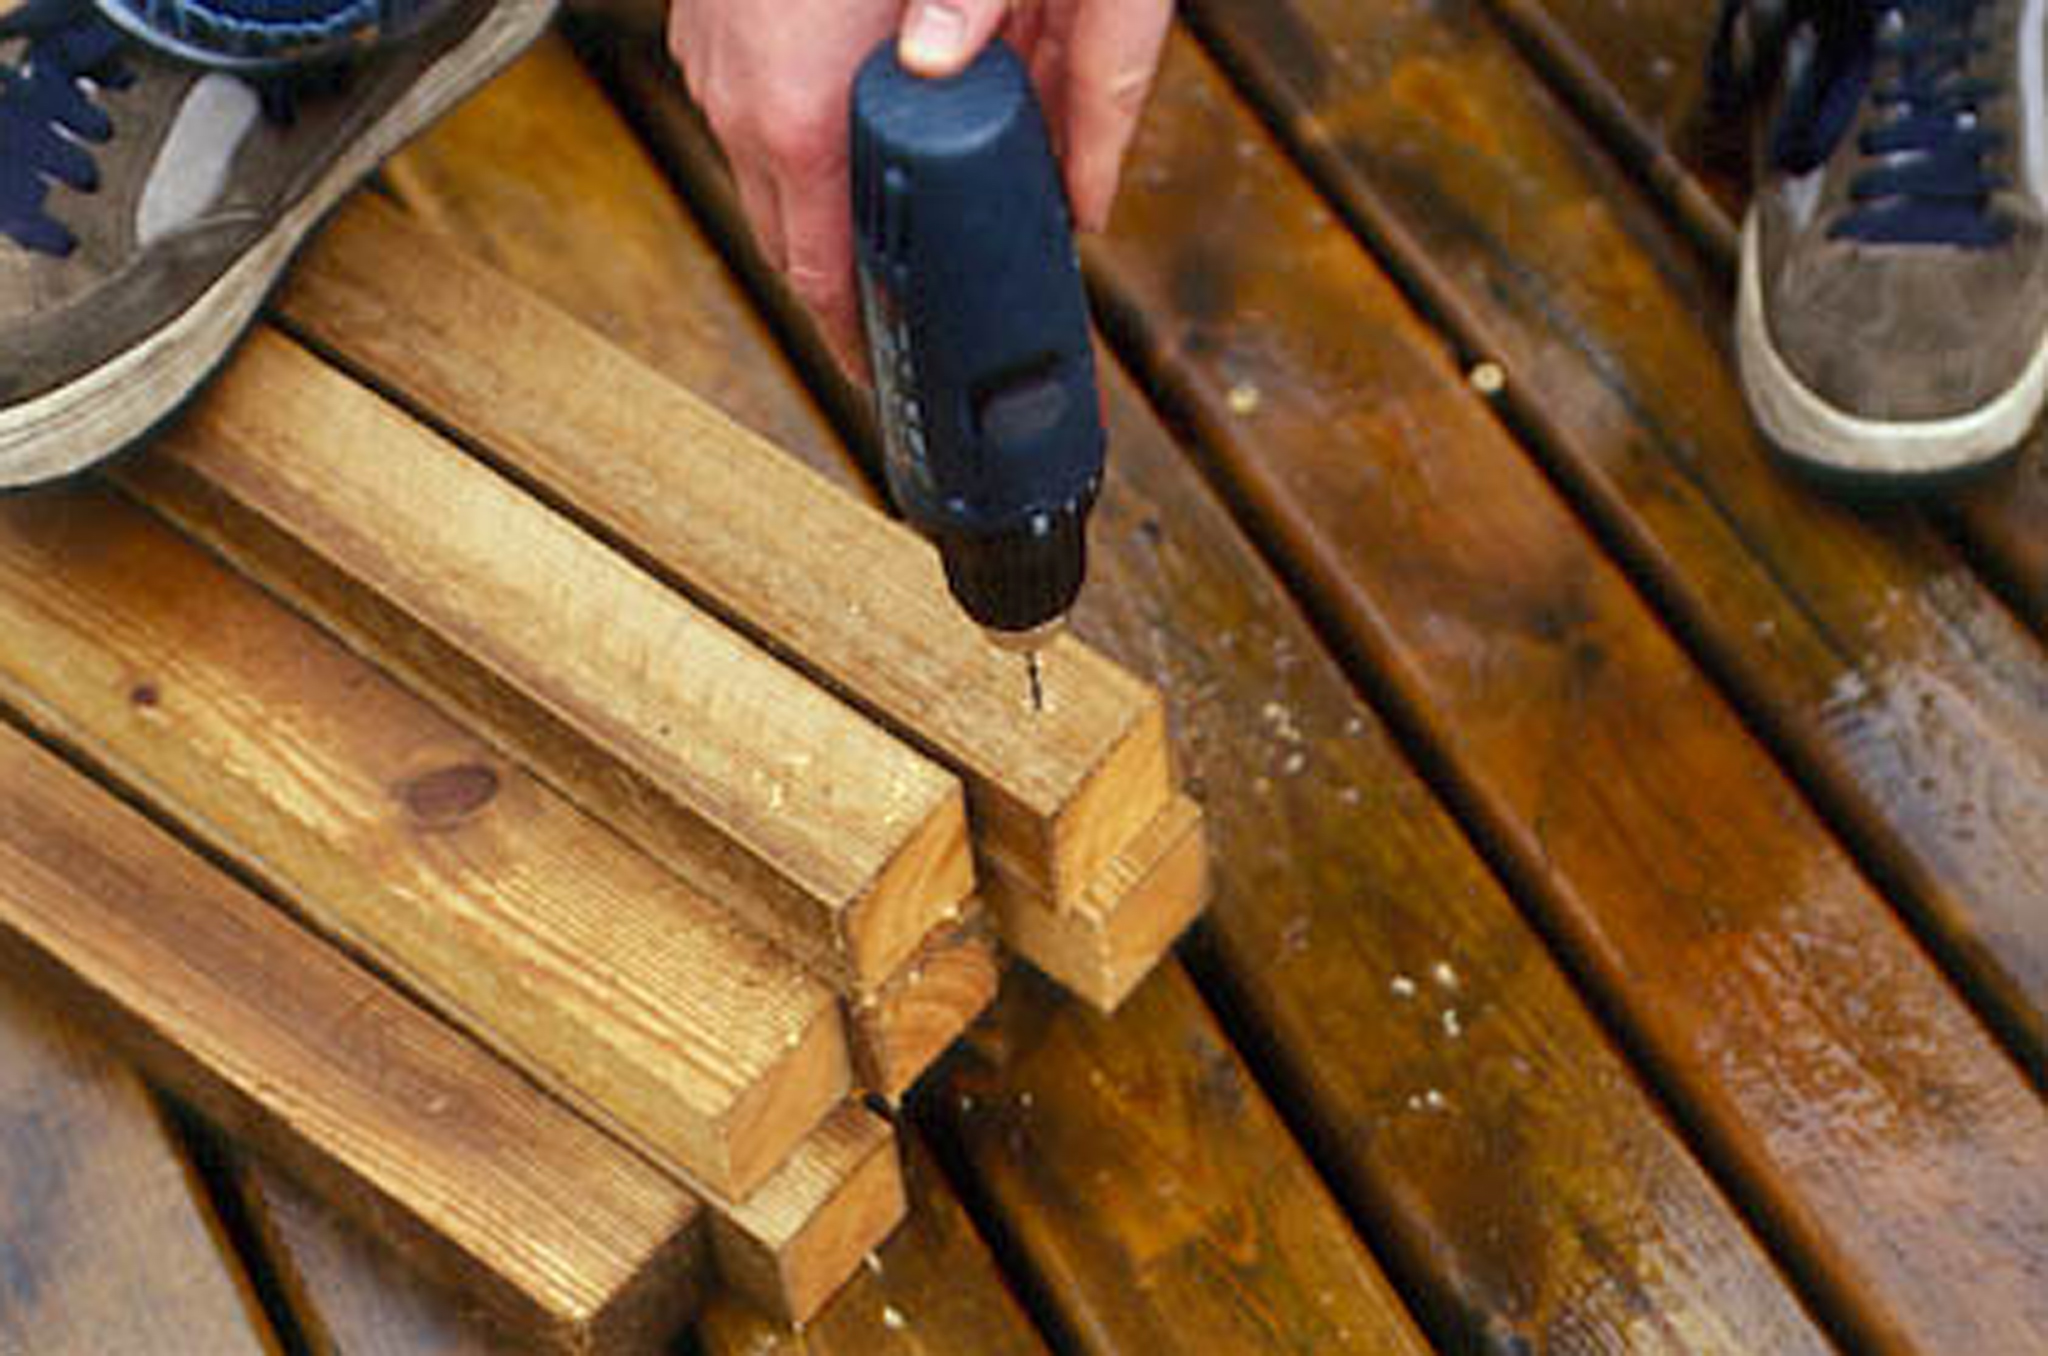 drilling-holes-to-make-a-wooden-planter-2